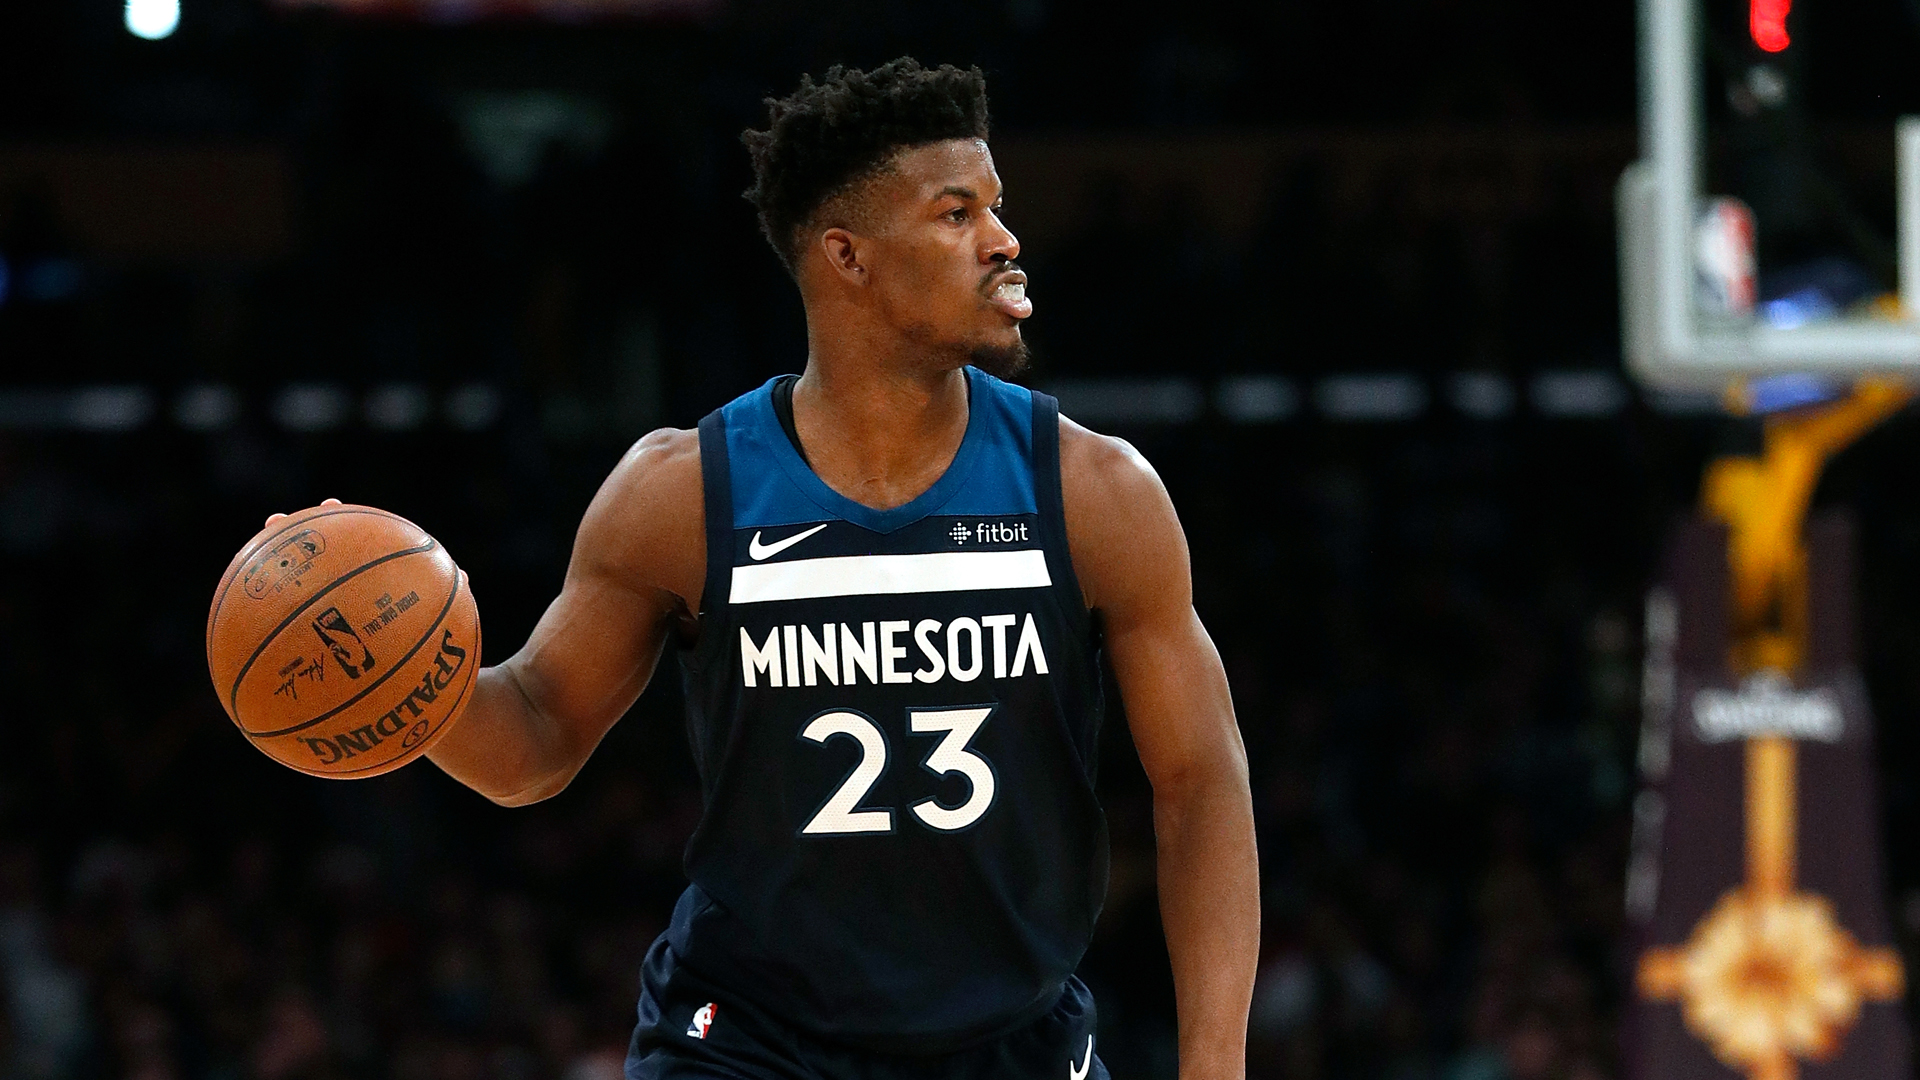 Jimmy Butler injury update: Timberwolves' forward will have MRI on knee Saturday